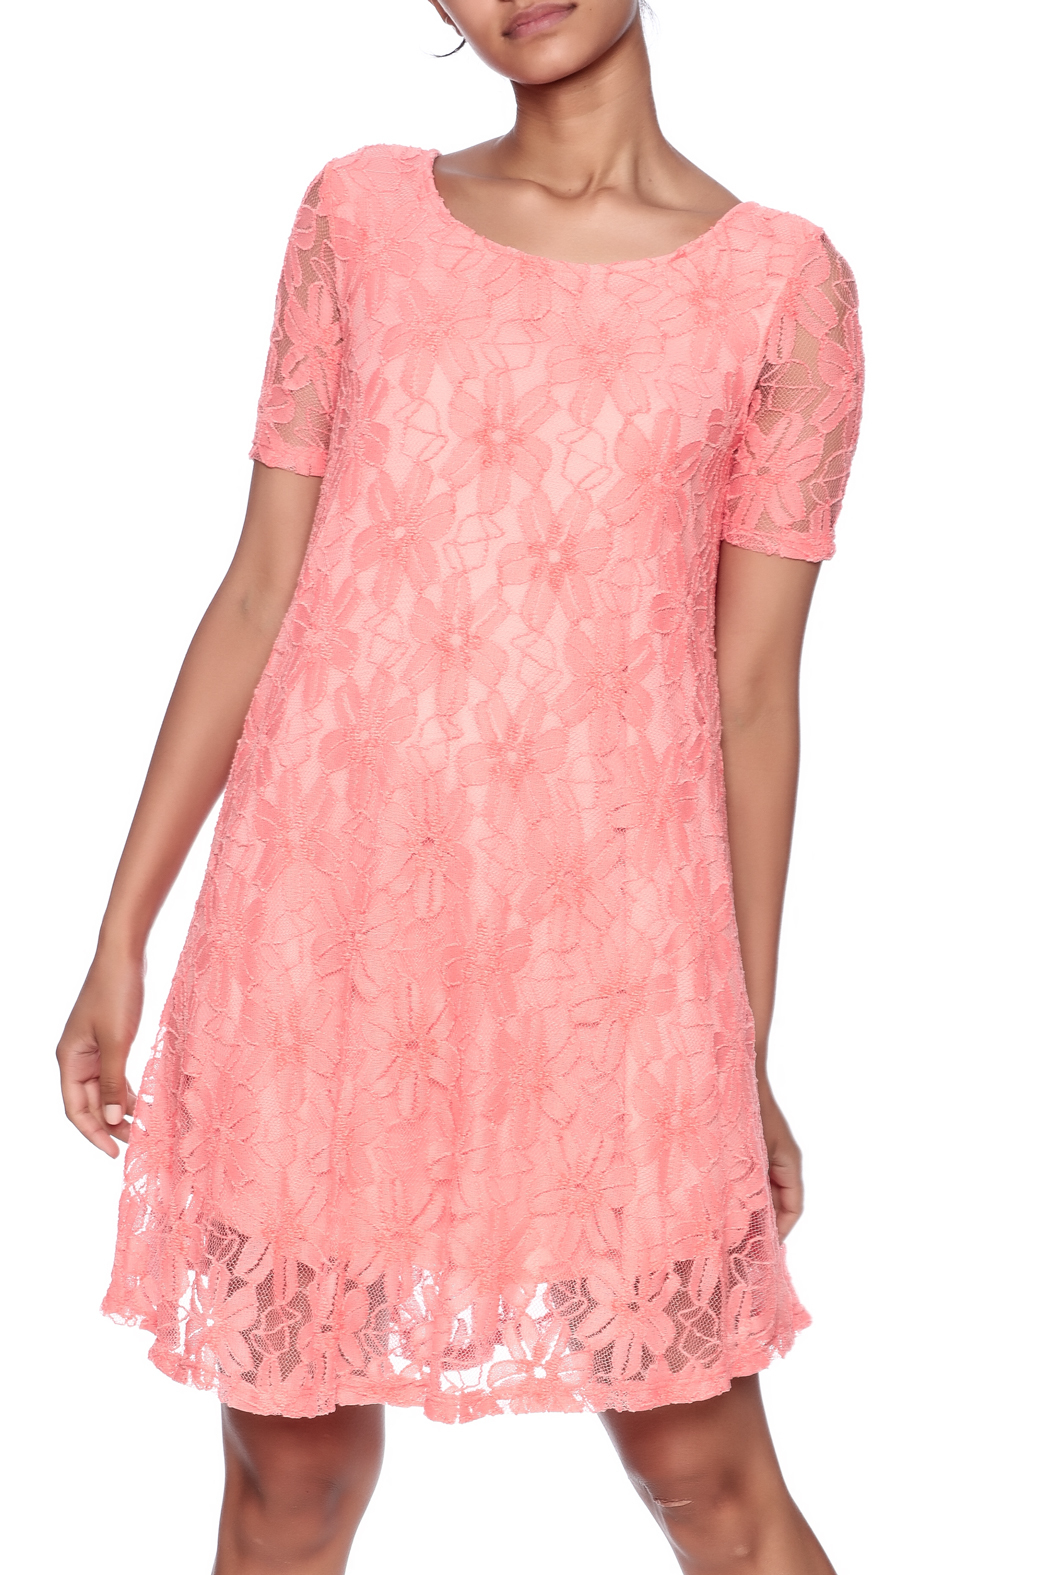 Lollipop Star Coral Lace Dress - Main Image